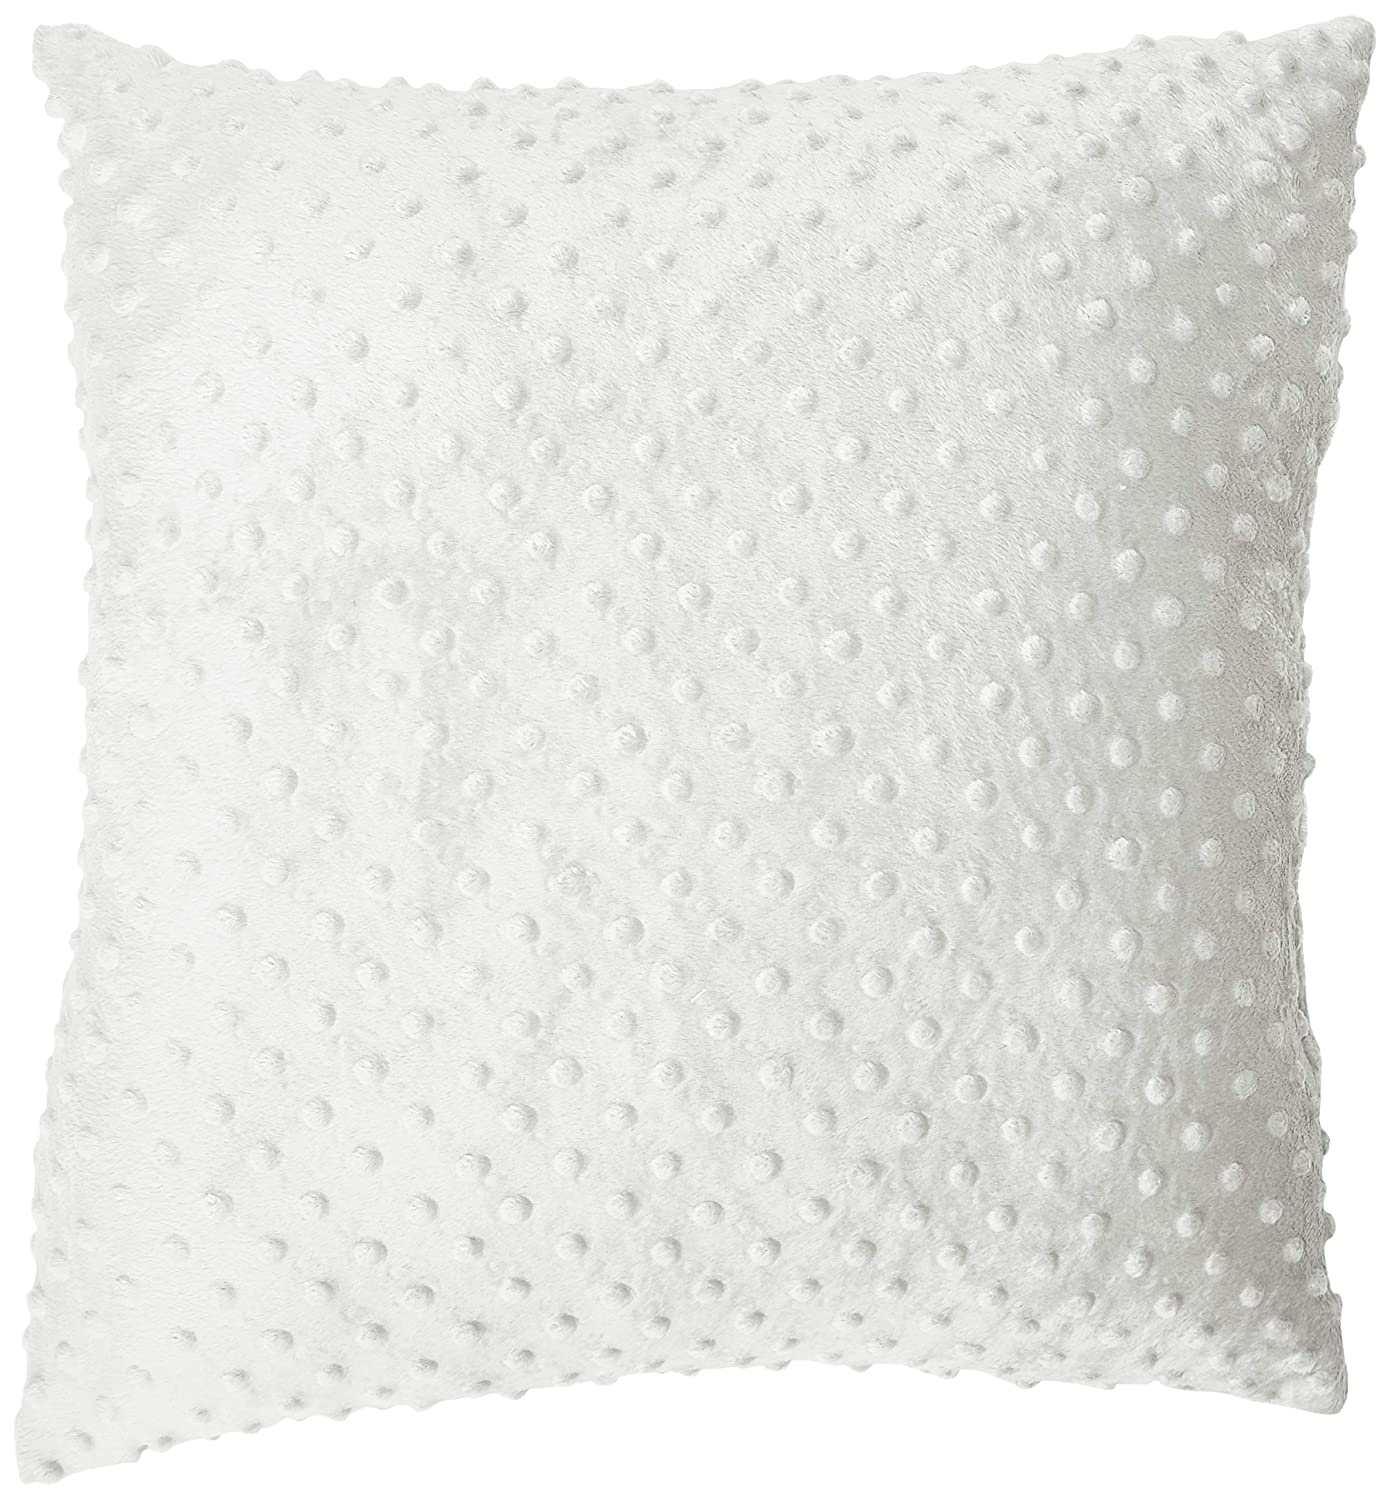 Baby Doll Bedding Heavenly Soft Direct Gifts store 2 White Crib Piece Pillow Throw